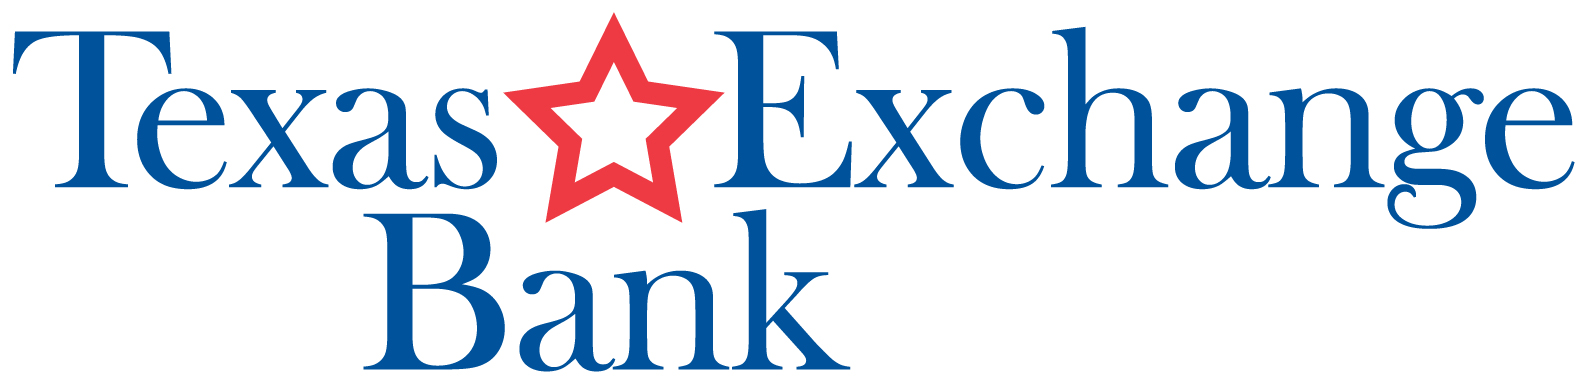 Texas Exchange Bank logo